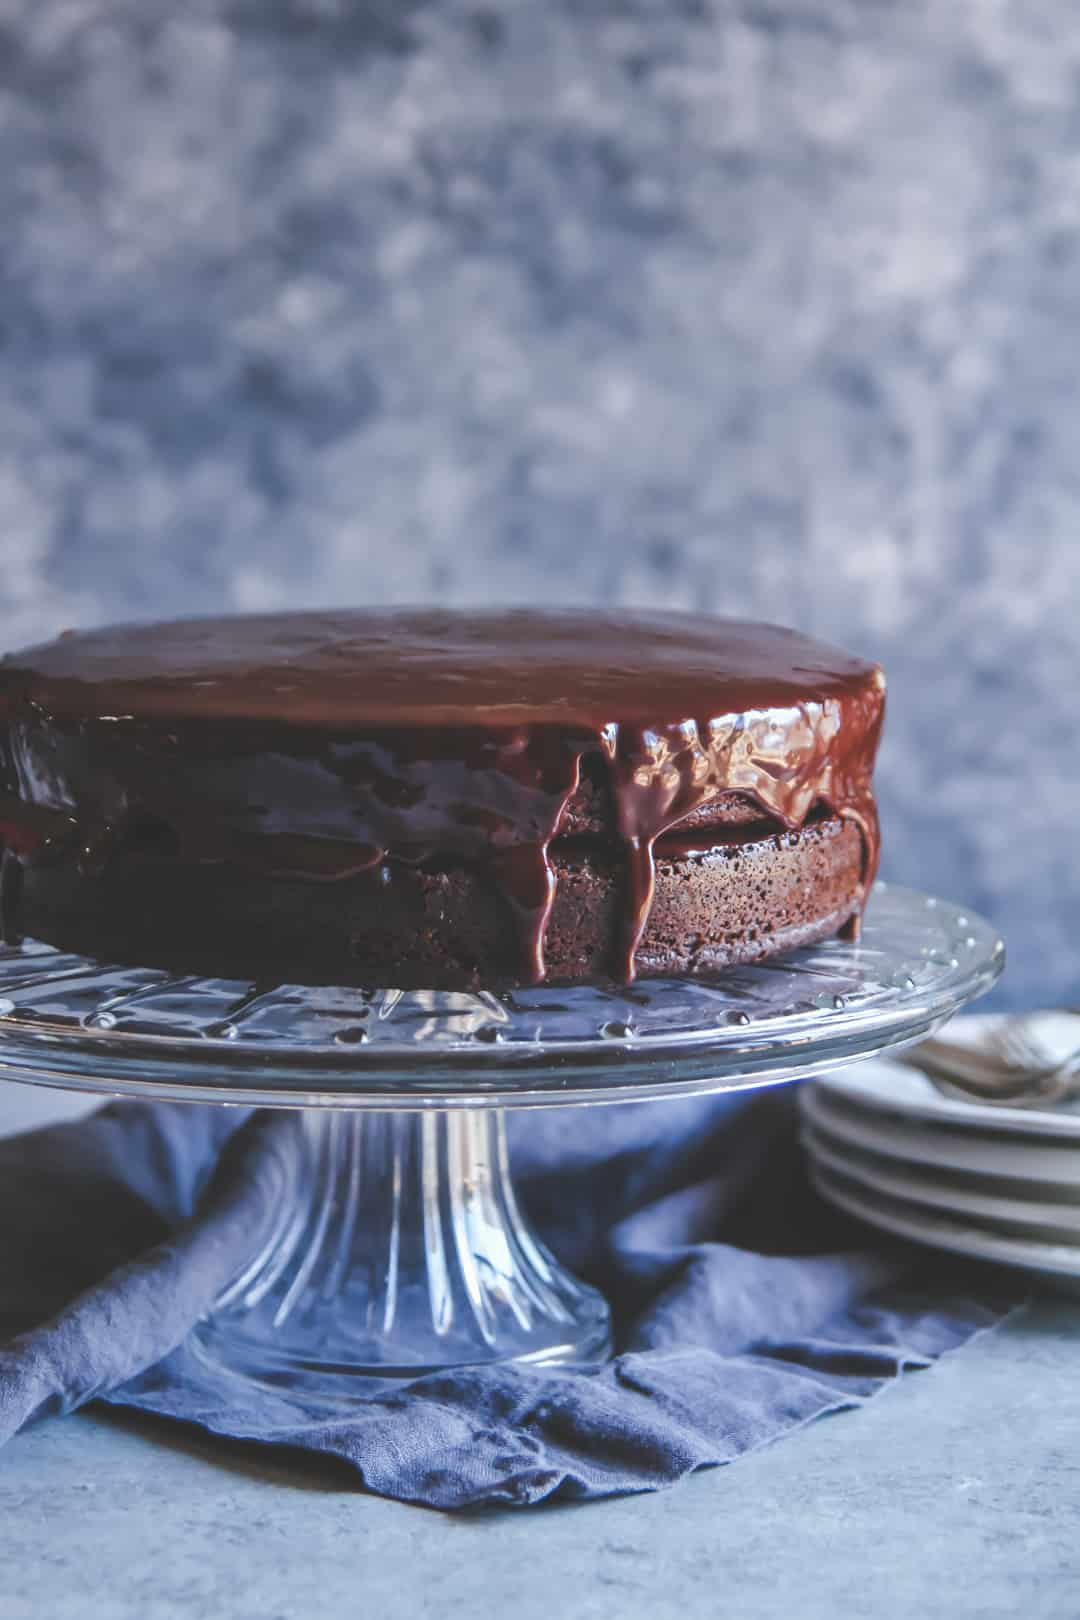 The best chocolate layer cake recipe you'll ever make!